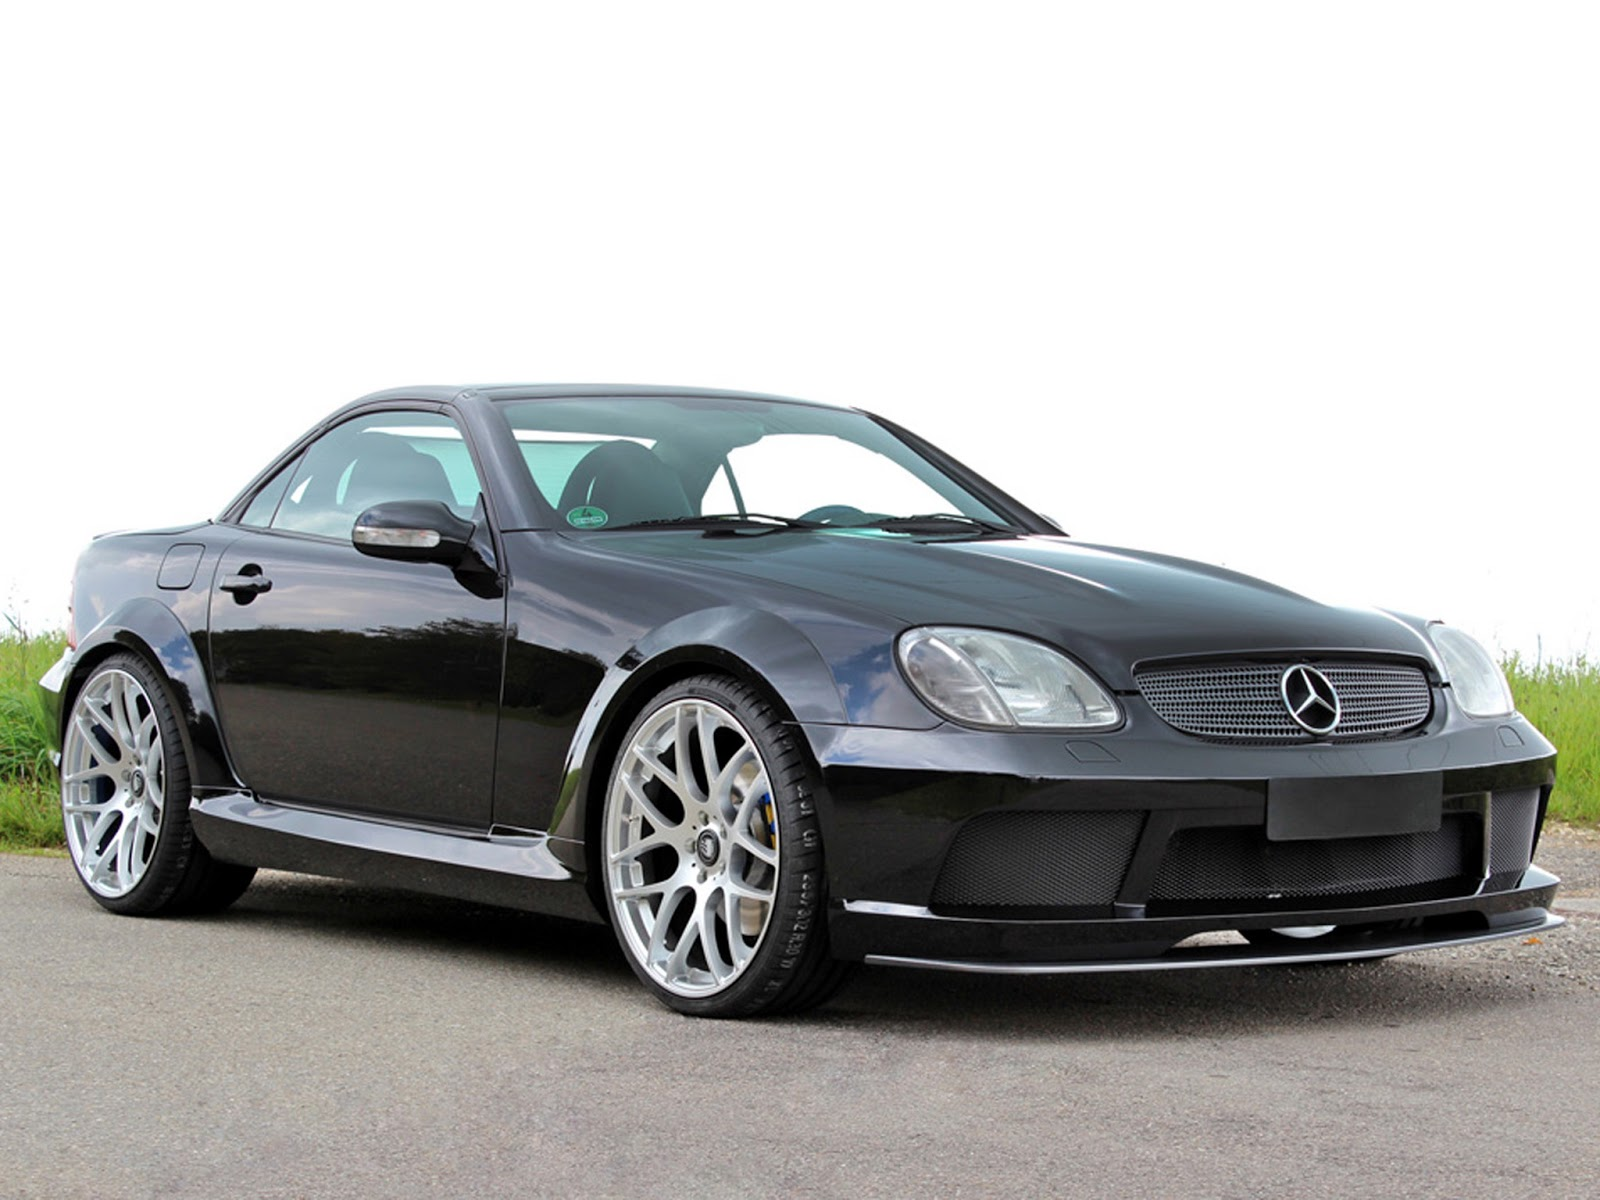 mercedes benz r170 slk 32 amg lumma design benztuning. Black Bedroom Furniture Sets. Home Design Ideas